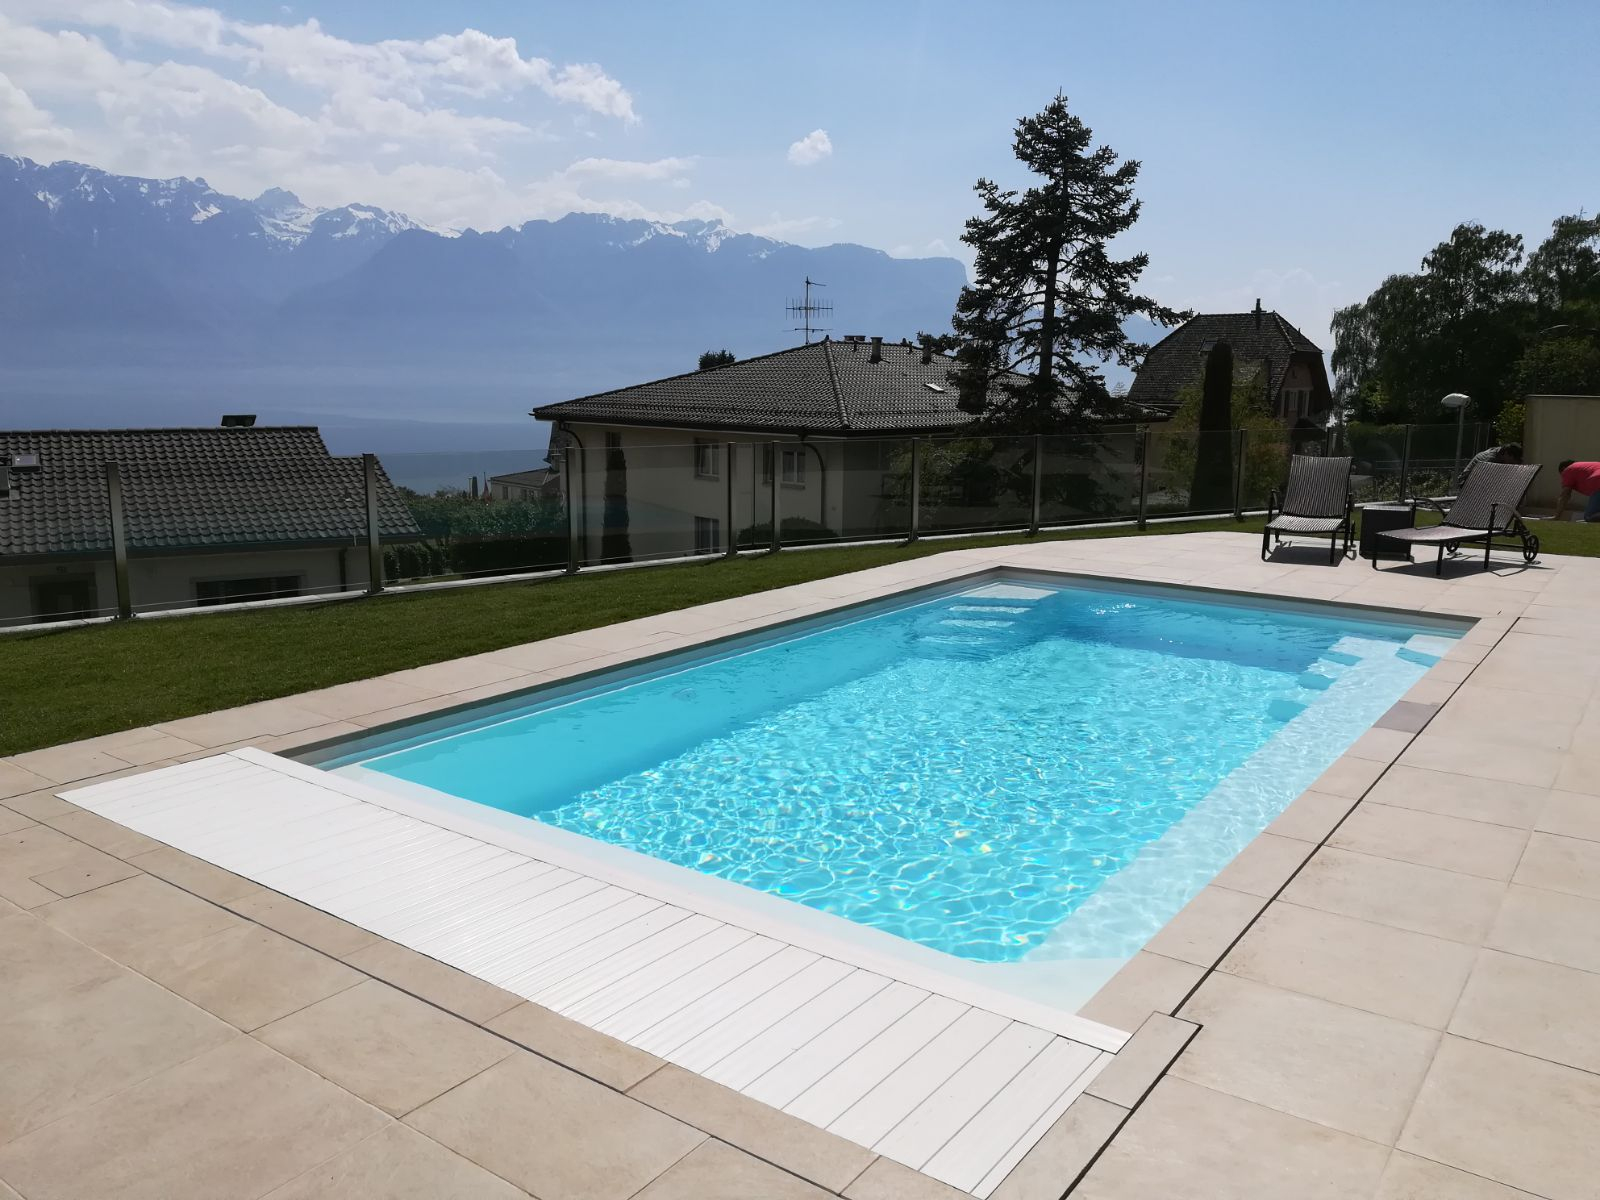 Autocover Swimming Pools - Freedom Pools pour Freedom Piscine